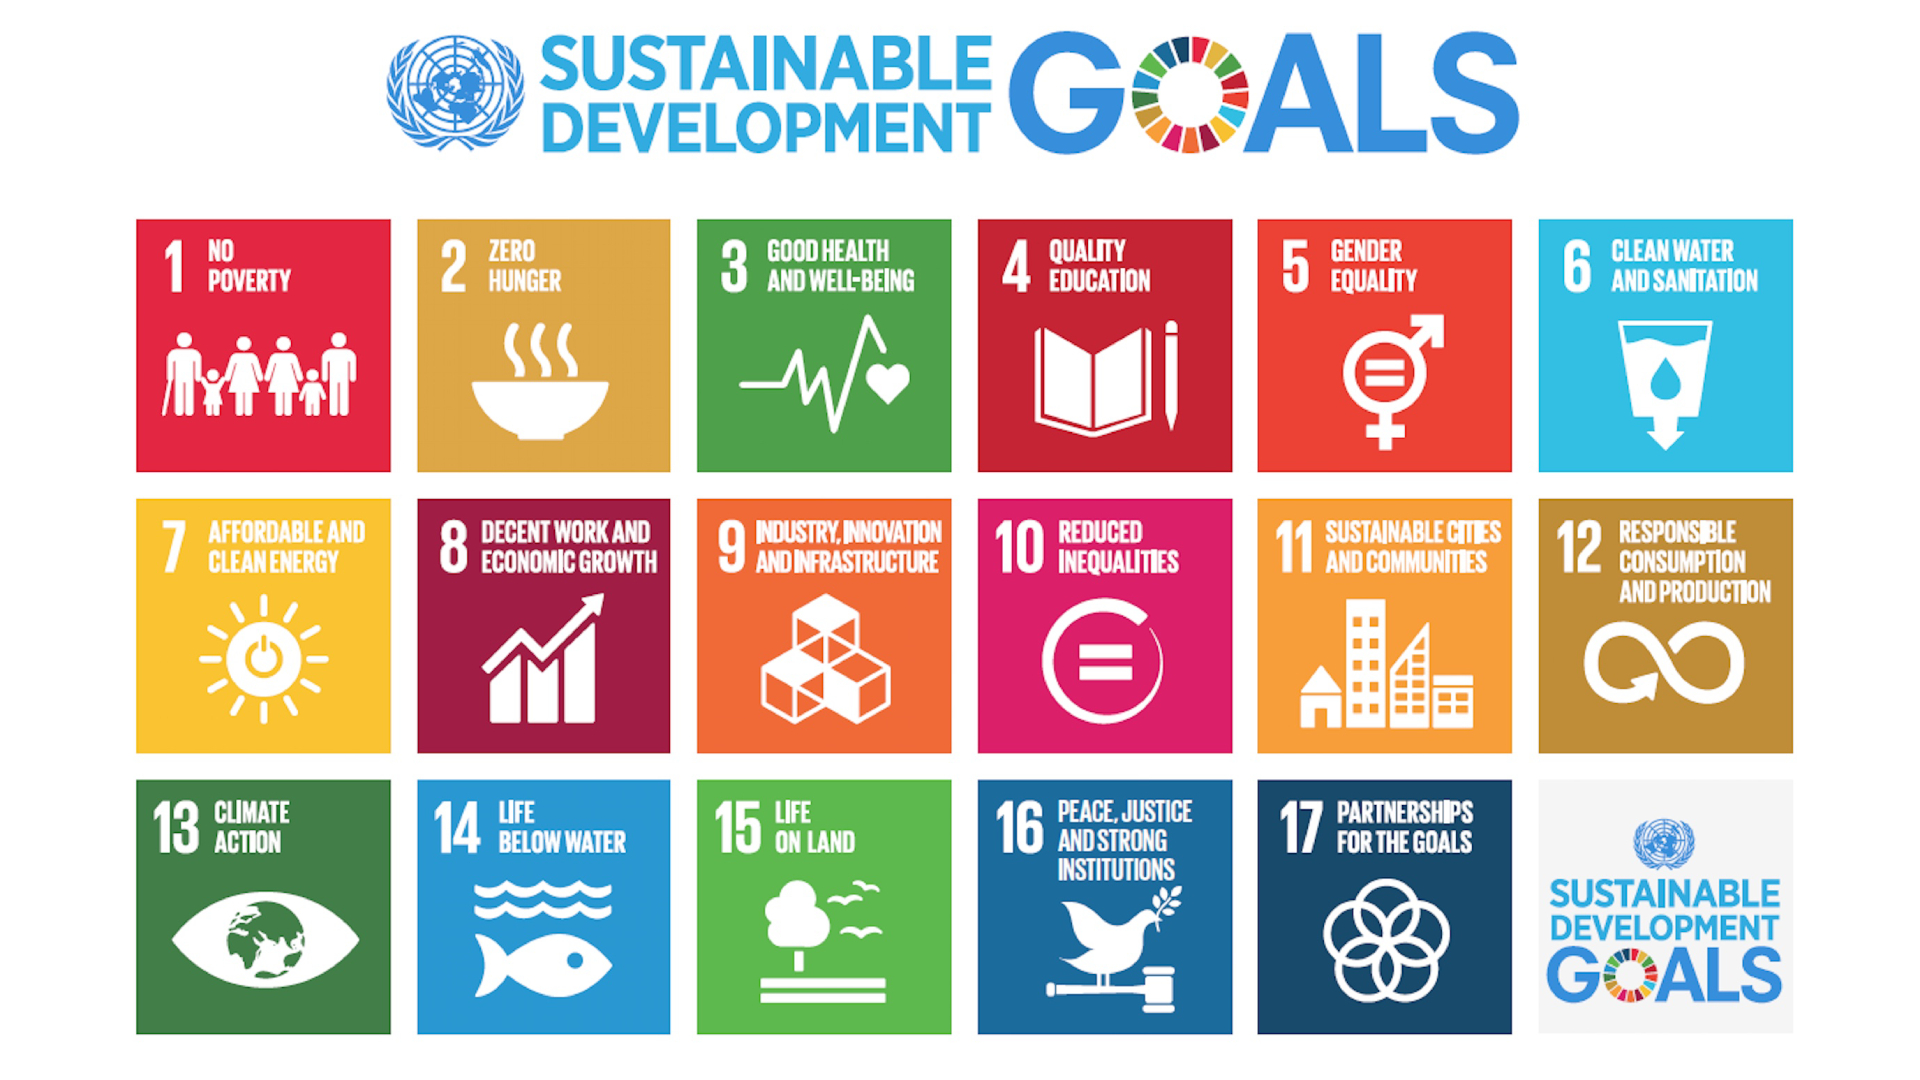 2030 Agenda Sustainable Development Goals